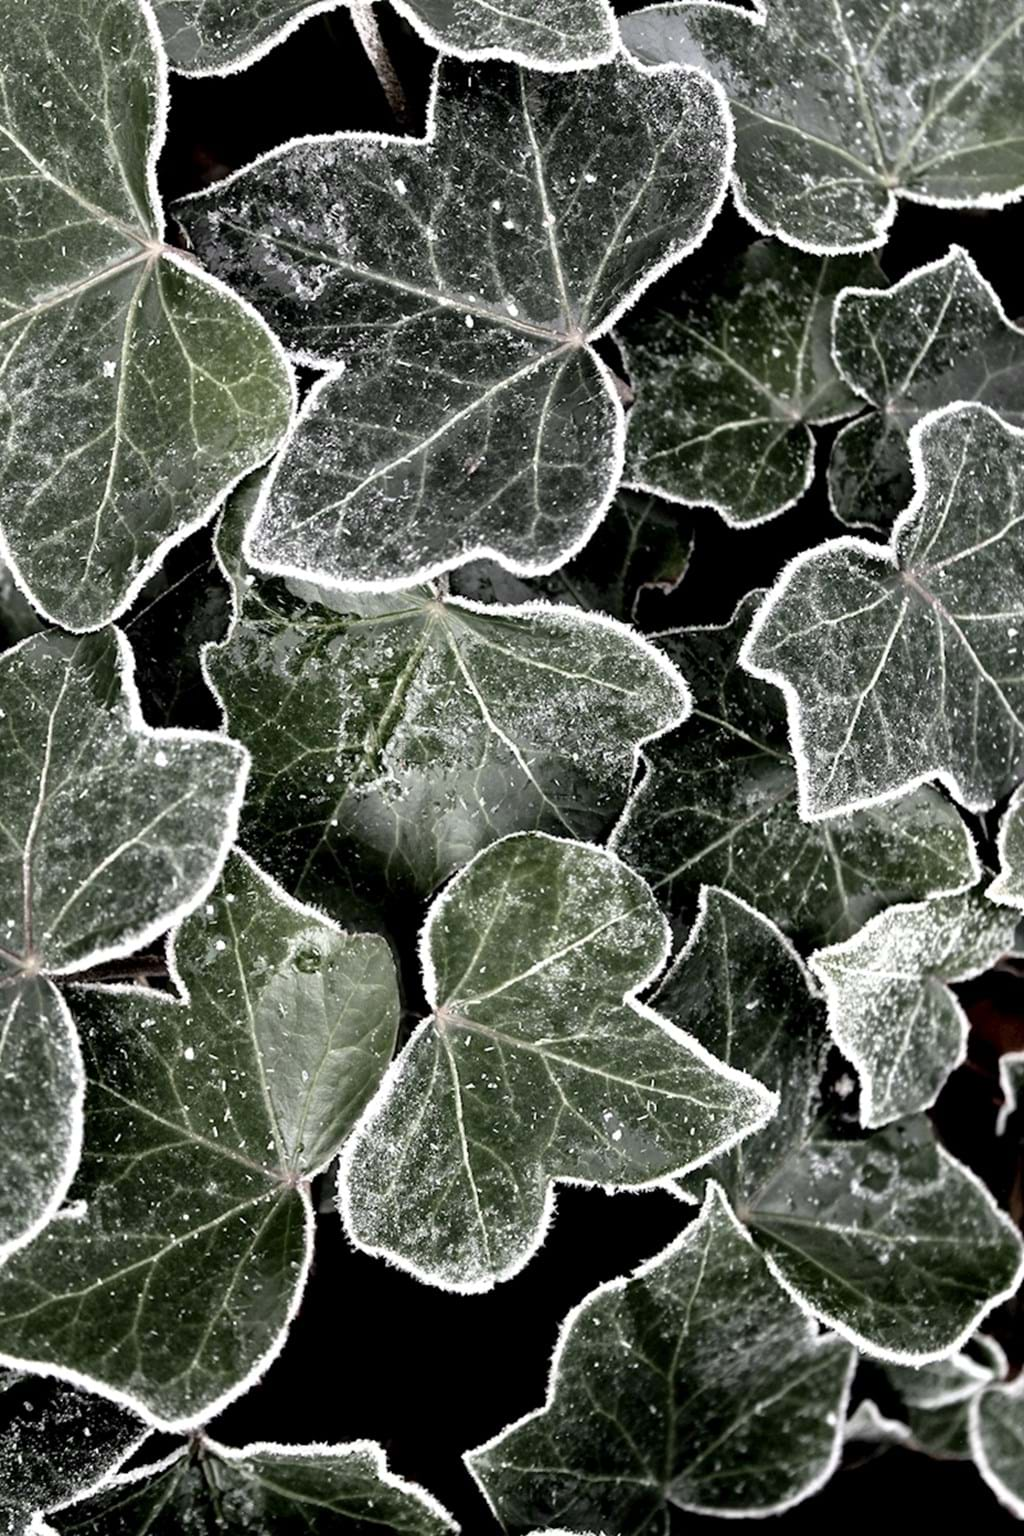 Poster: Ivy with lace - A sign of autumn, frost. This picture of ivy with frosted edges och darker ...